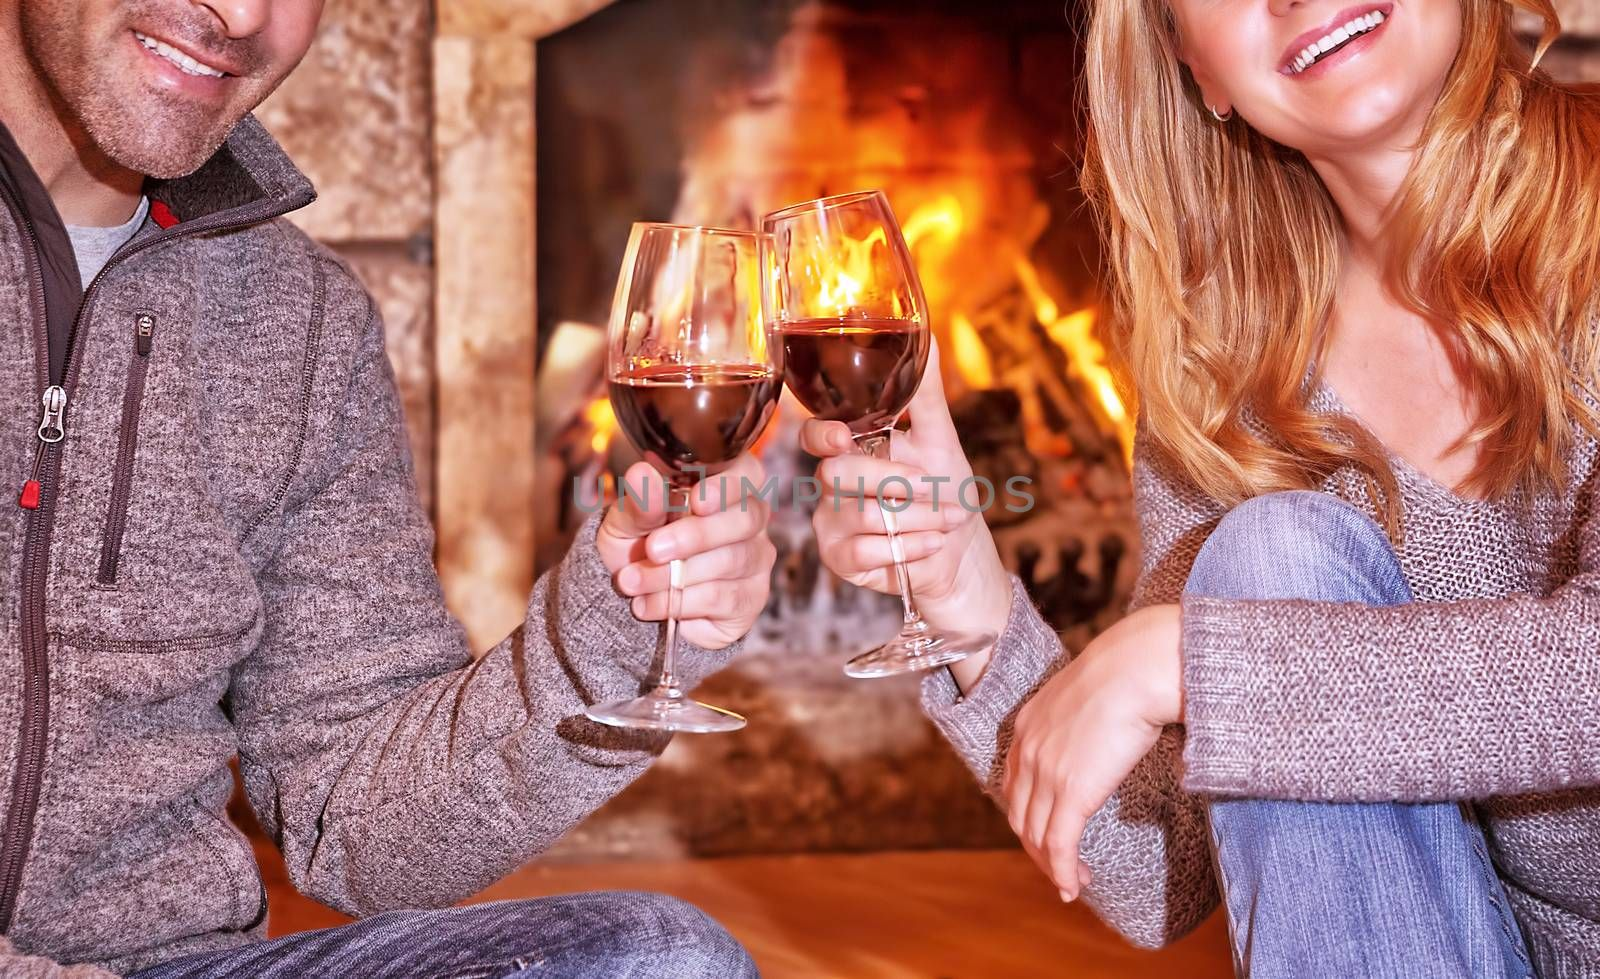 Happy young couple sitting near fireplace and drinking wine, enjoying romantic date, celebrating Valentines day in a cozy winter house